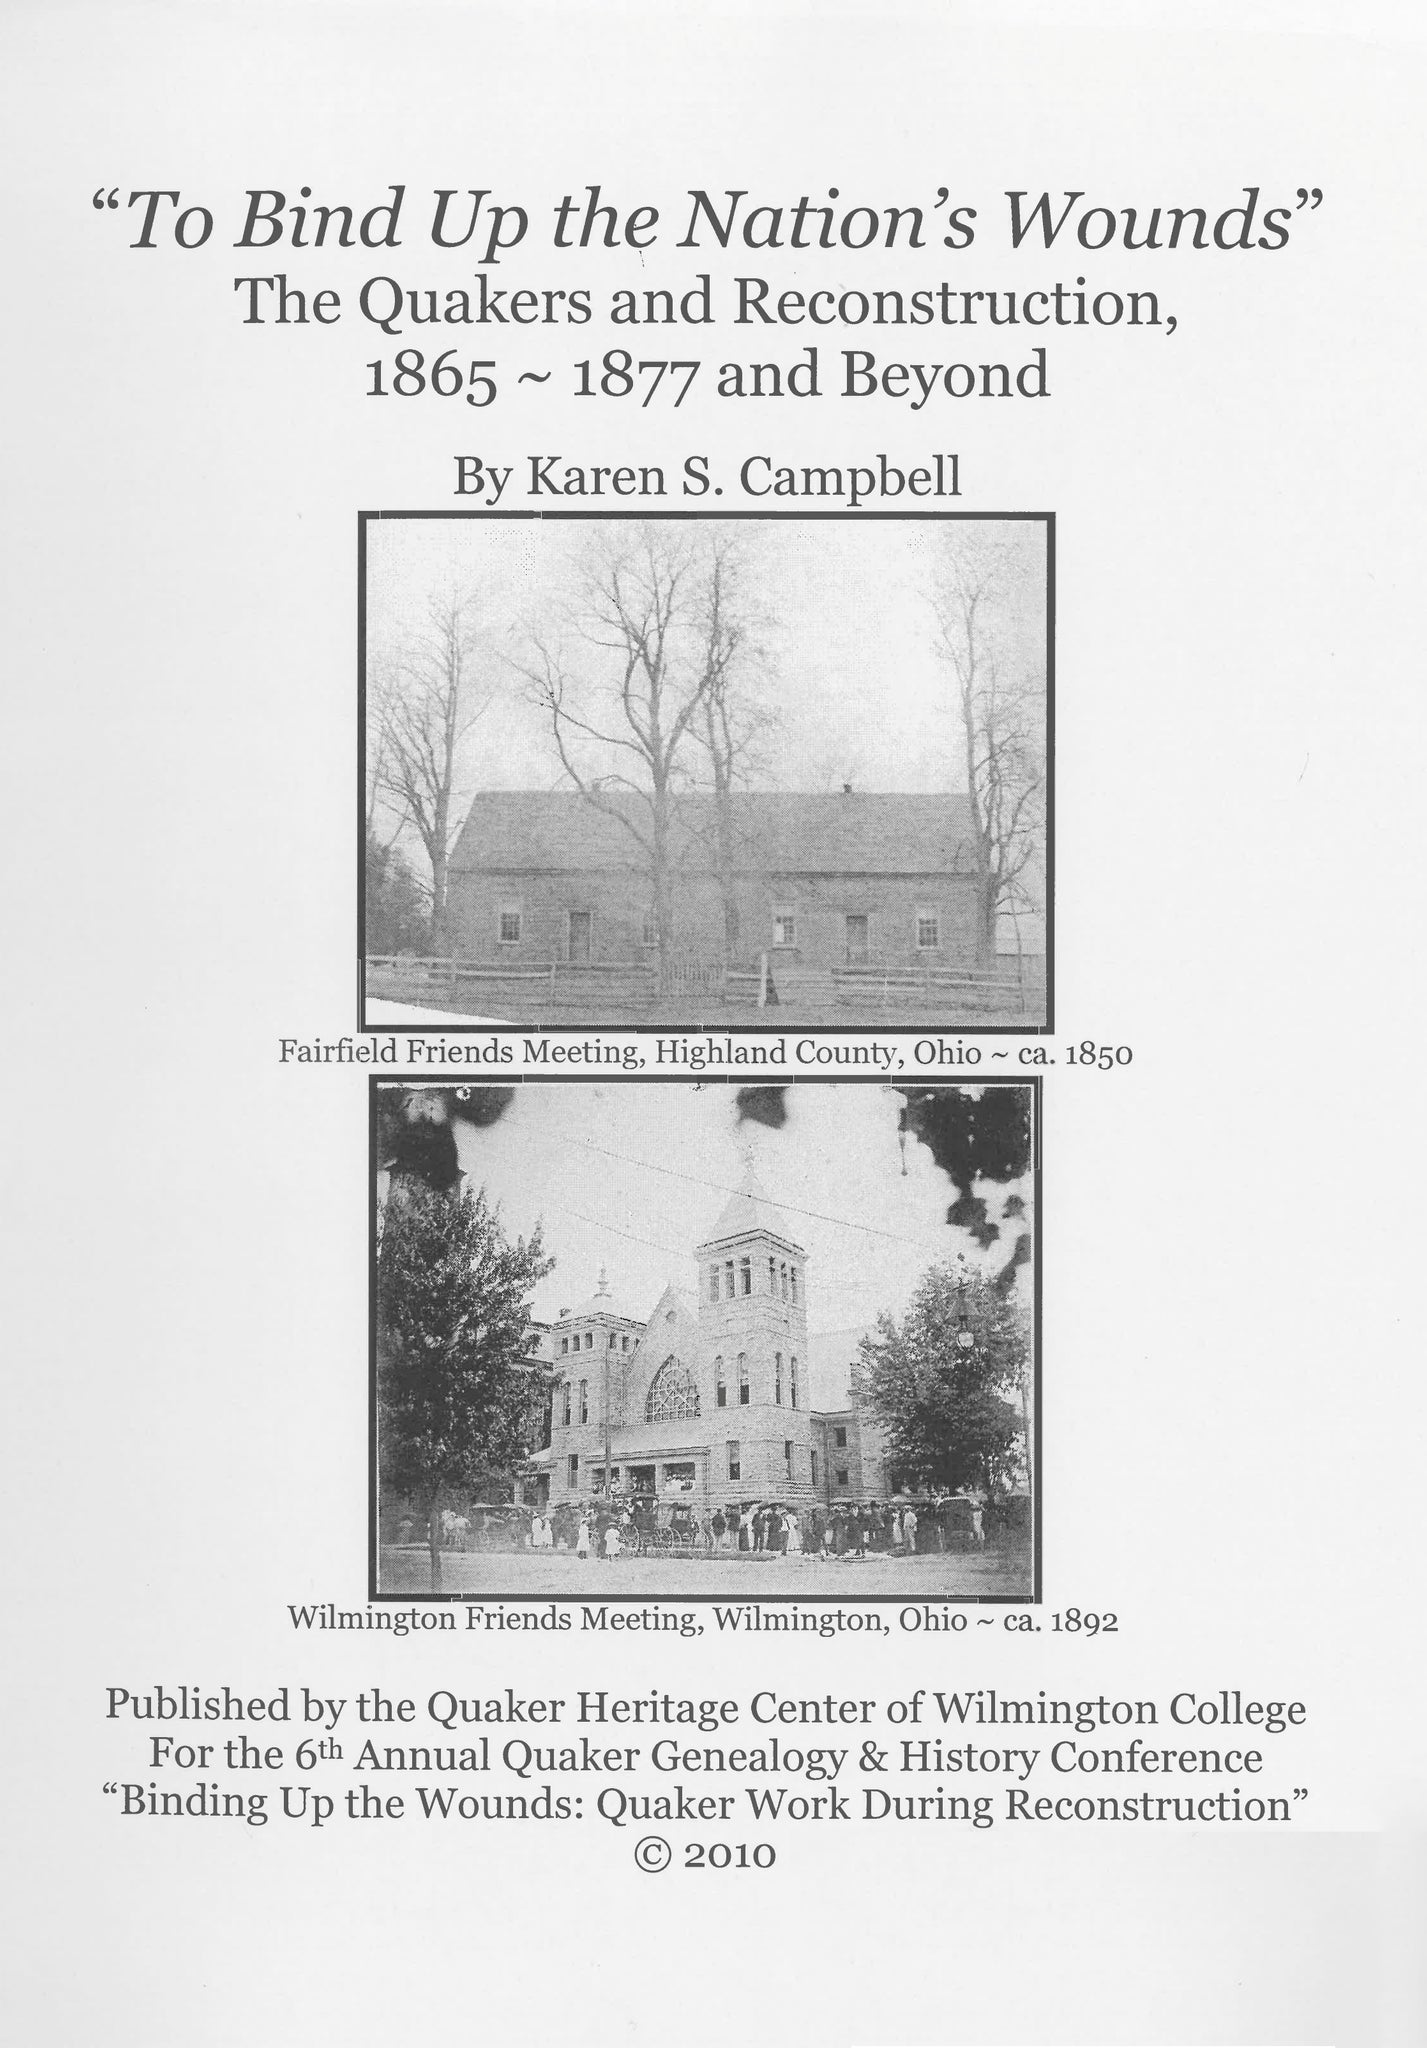 To Bind Up the Nation's Wounds: Quakers and Reconstruction, 1865-1877 and Beyond